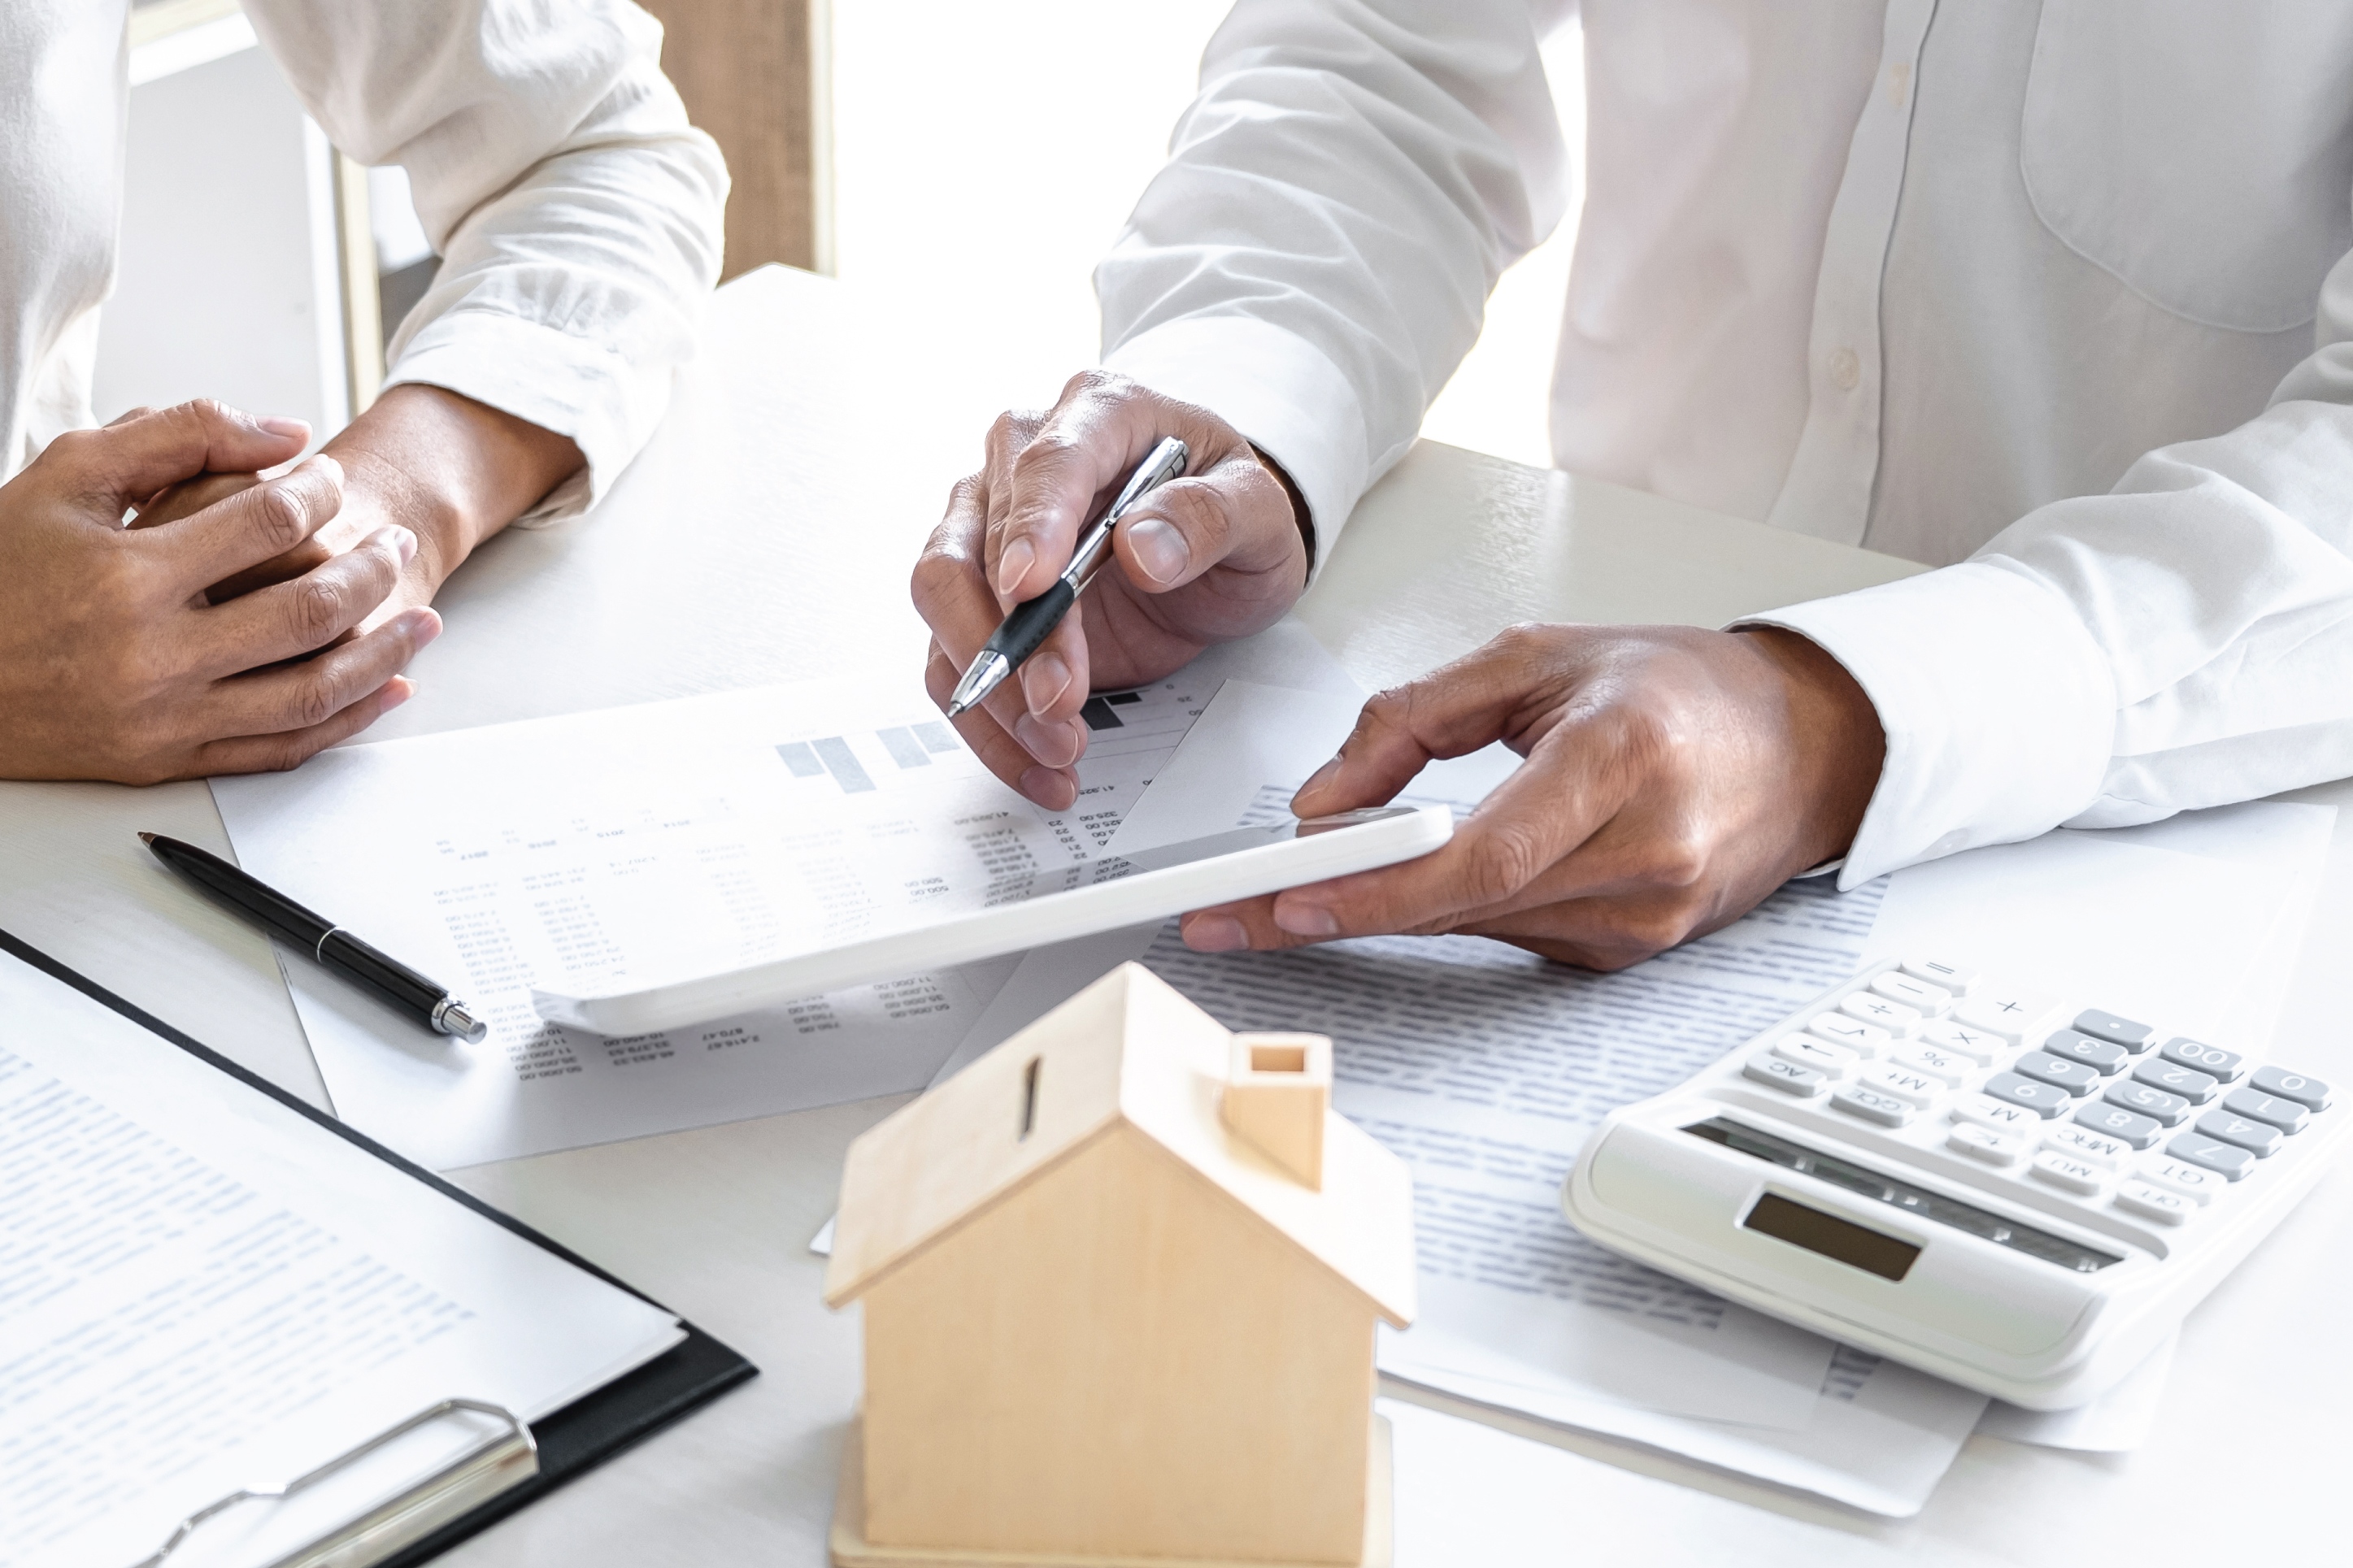 man pointing to homebuying documents